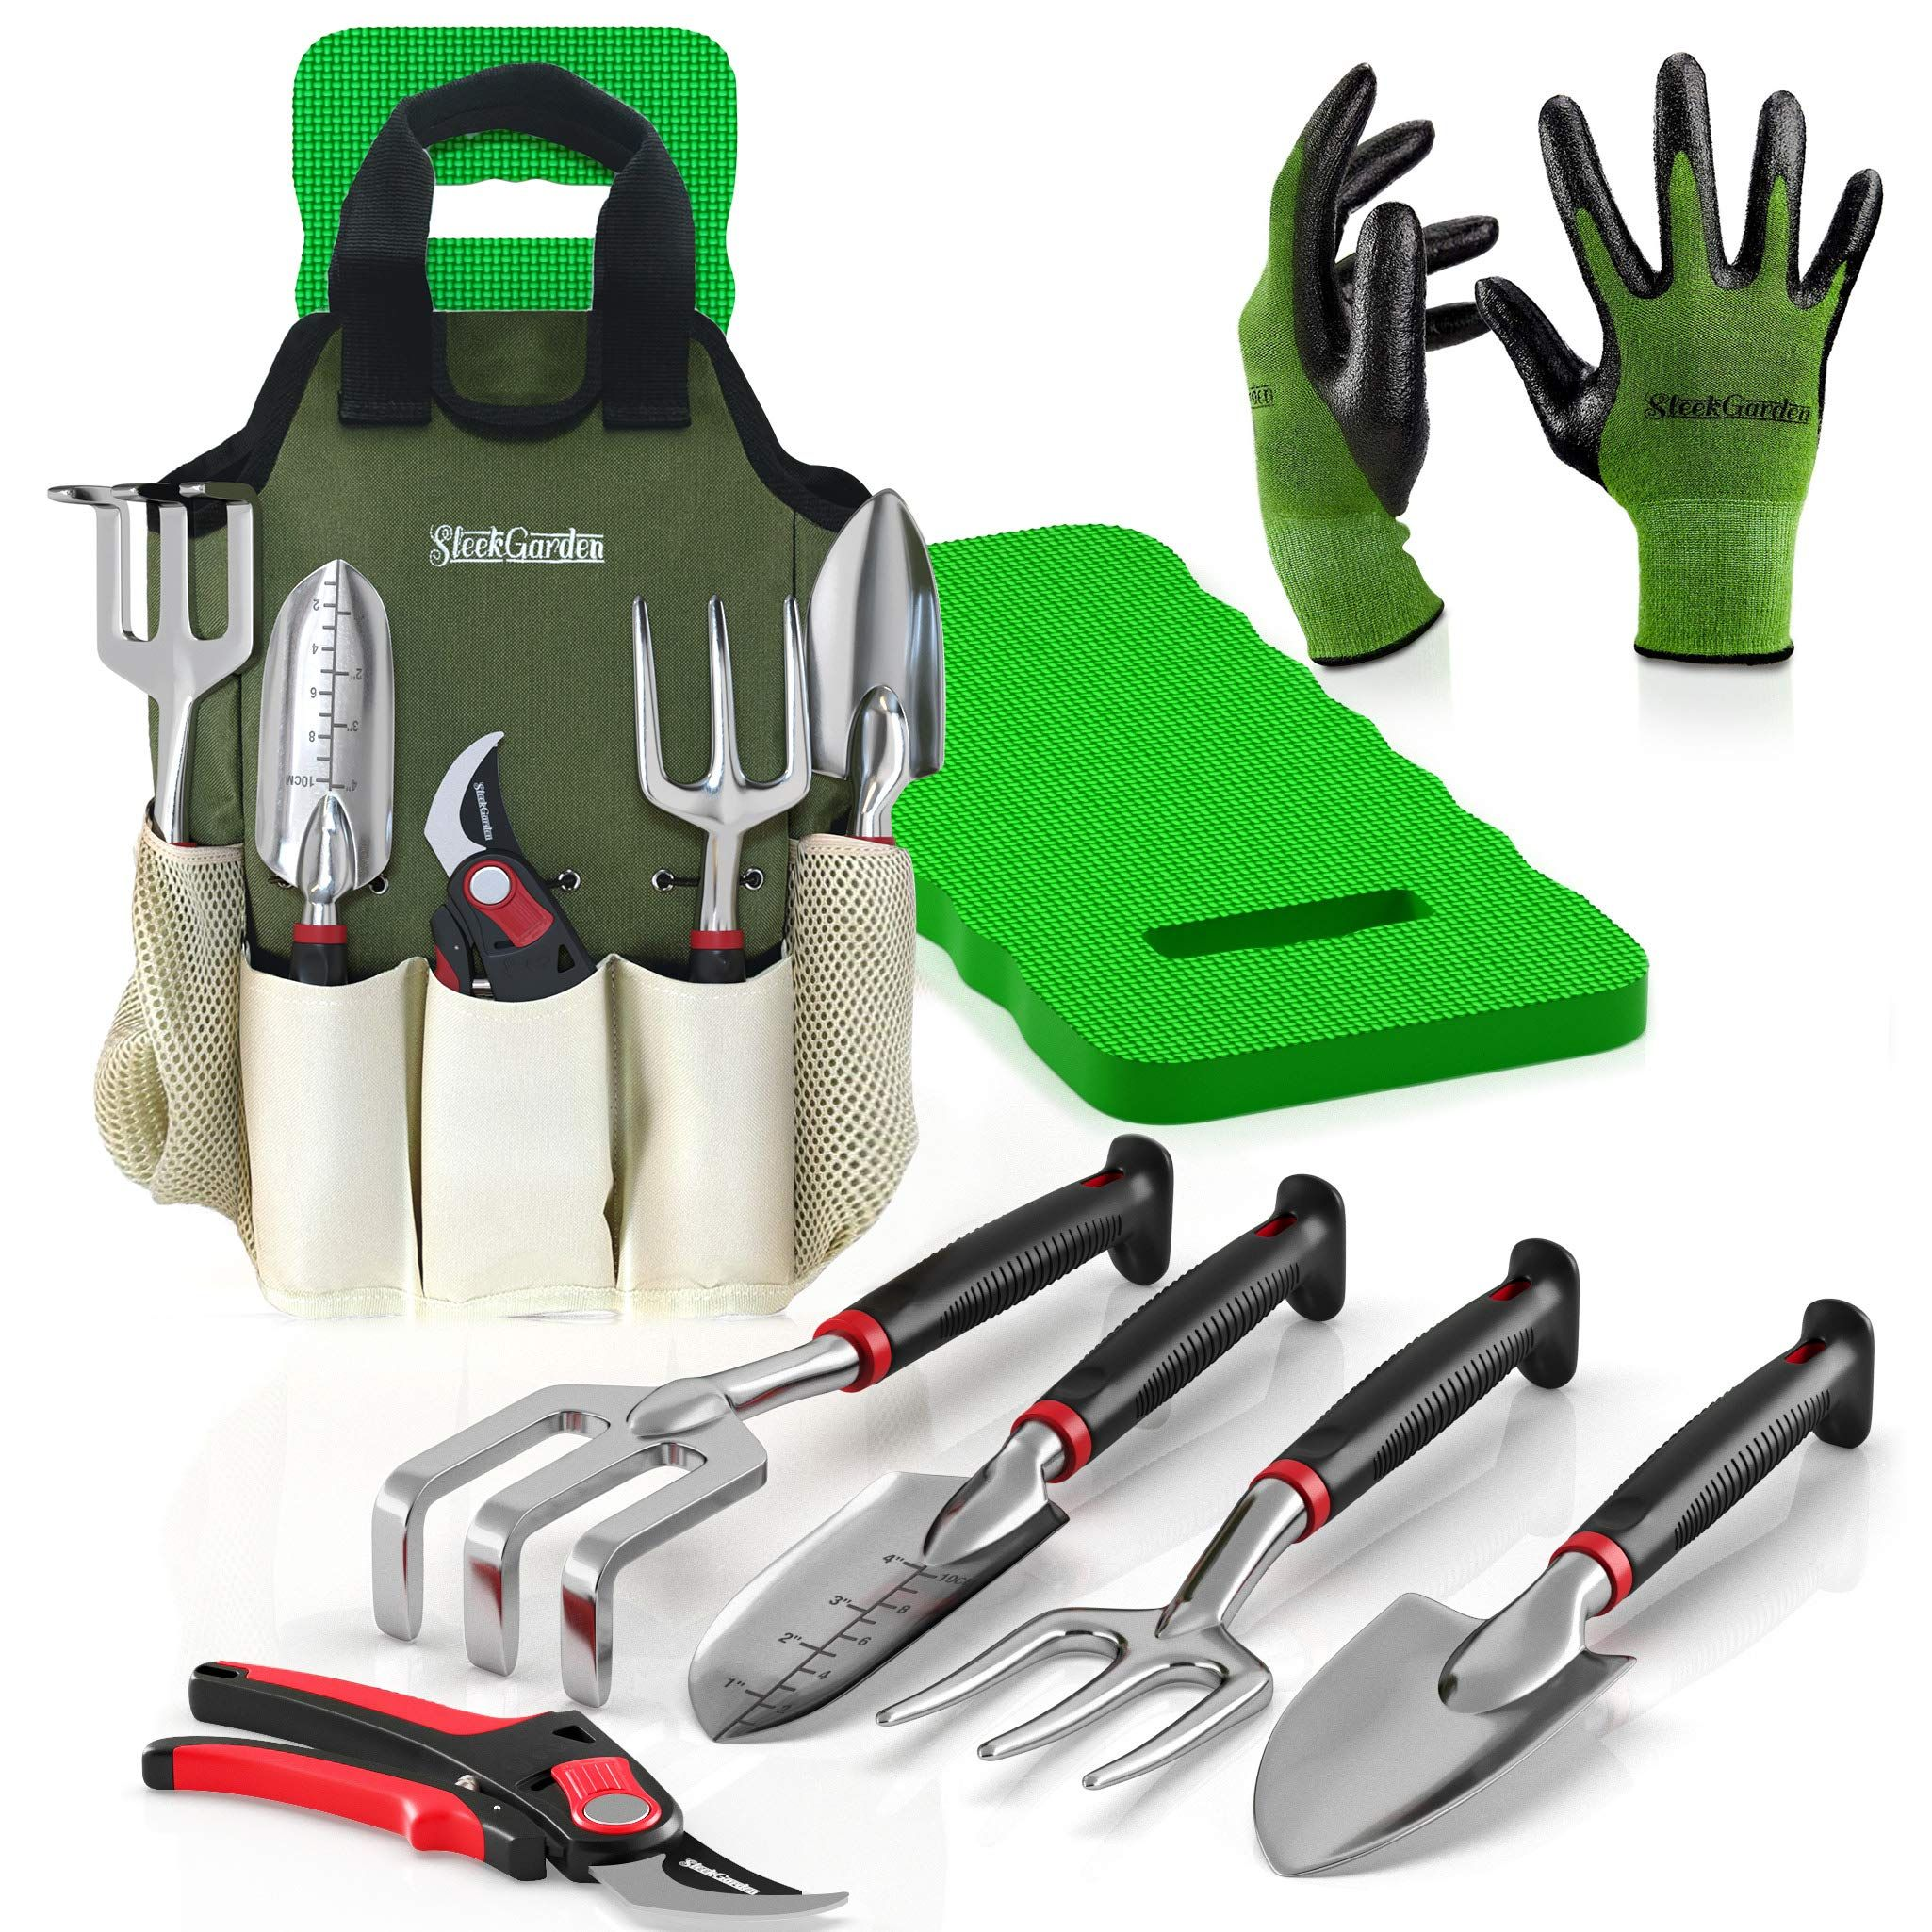 7 Piece Stainless Steel Gardening Tools With Soft Handle TACKLIFE Garden Tools